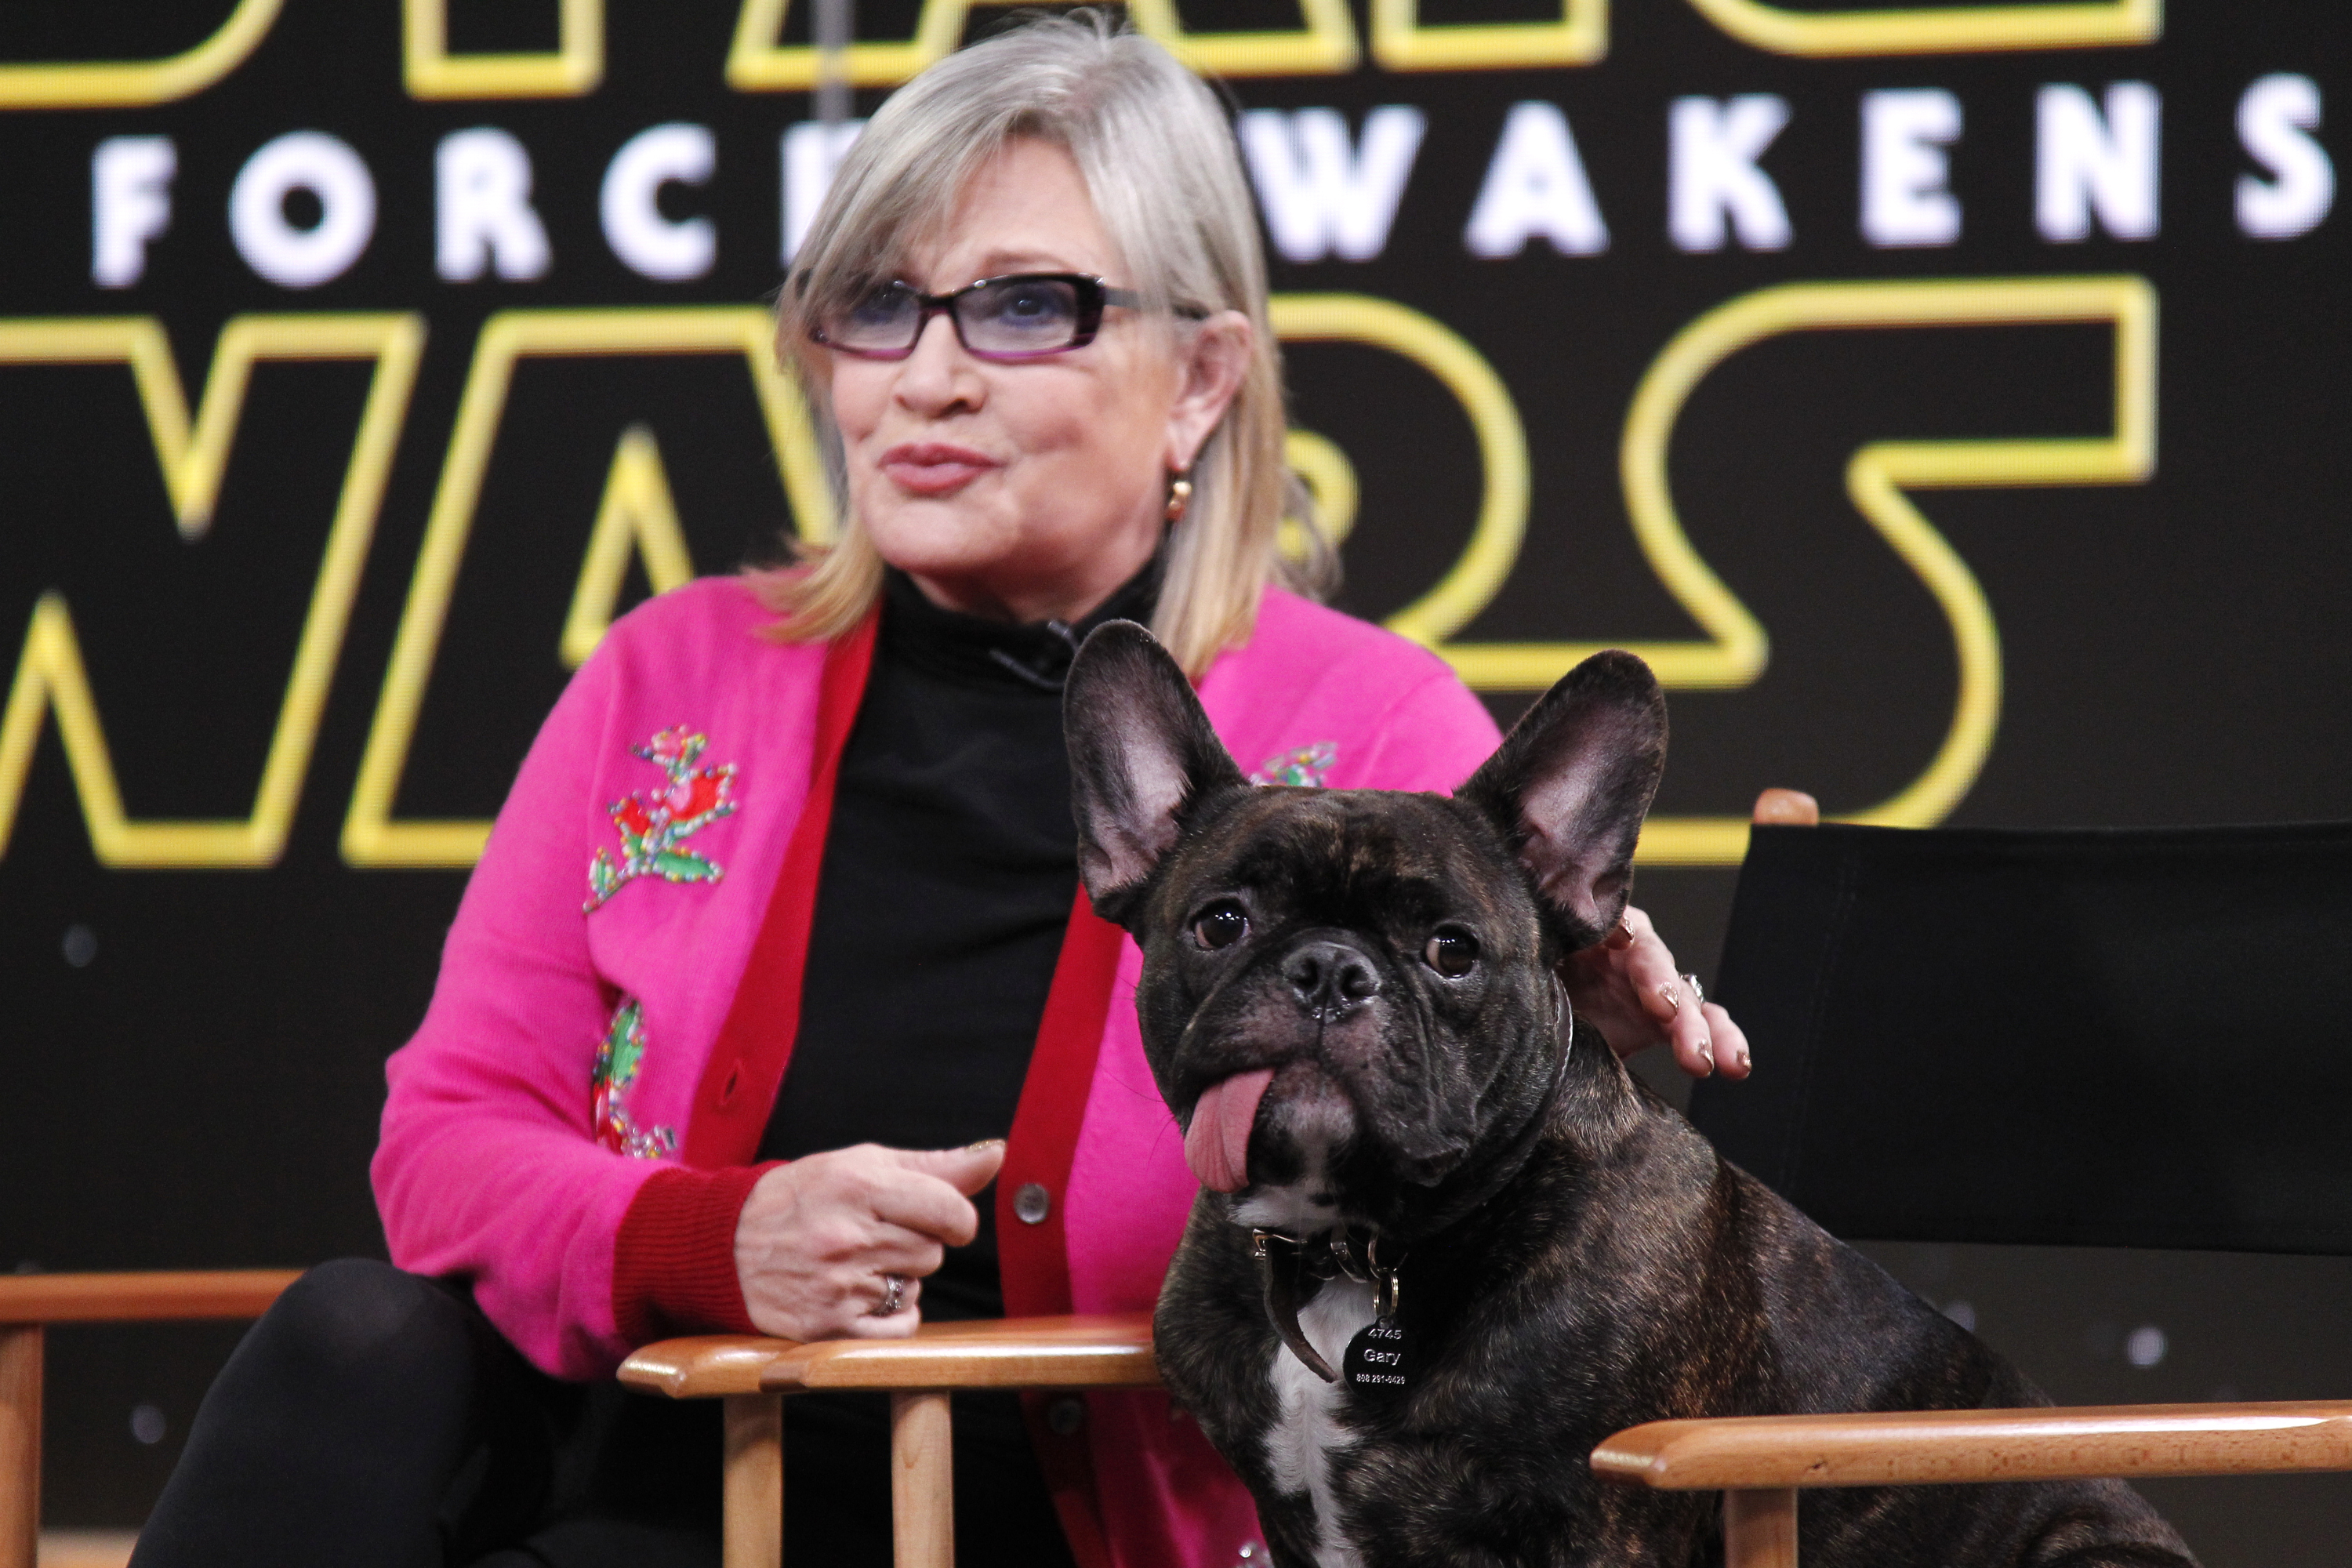 We've got an update on Carrie Fisher, and it is GOOD news